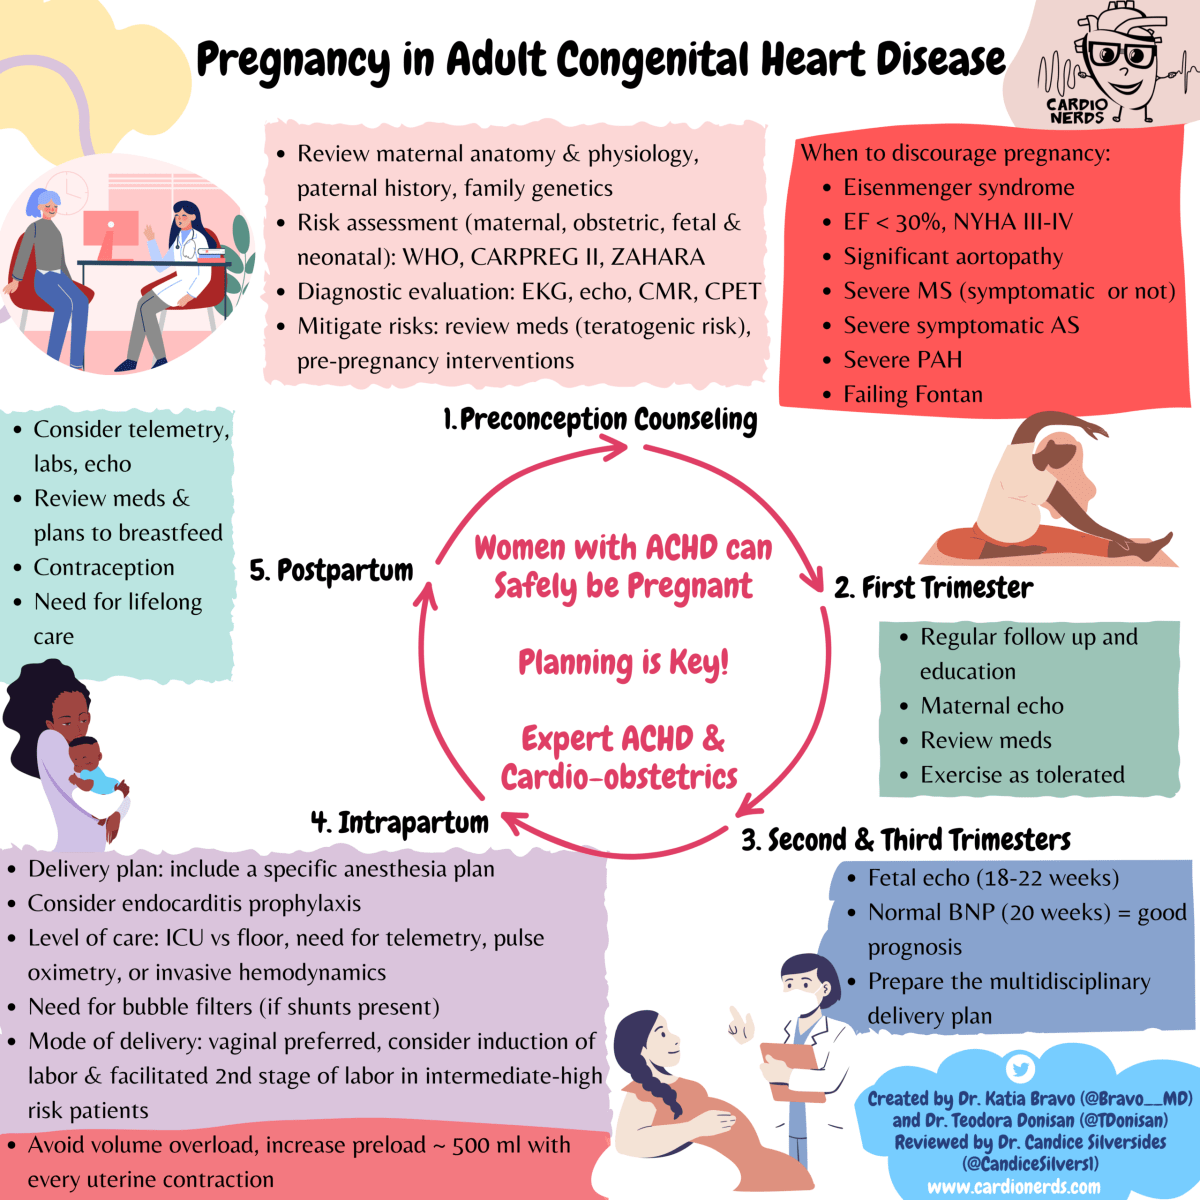 Pegnancy and Congential Heart Disease